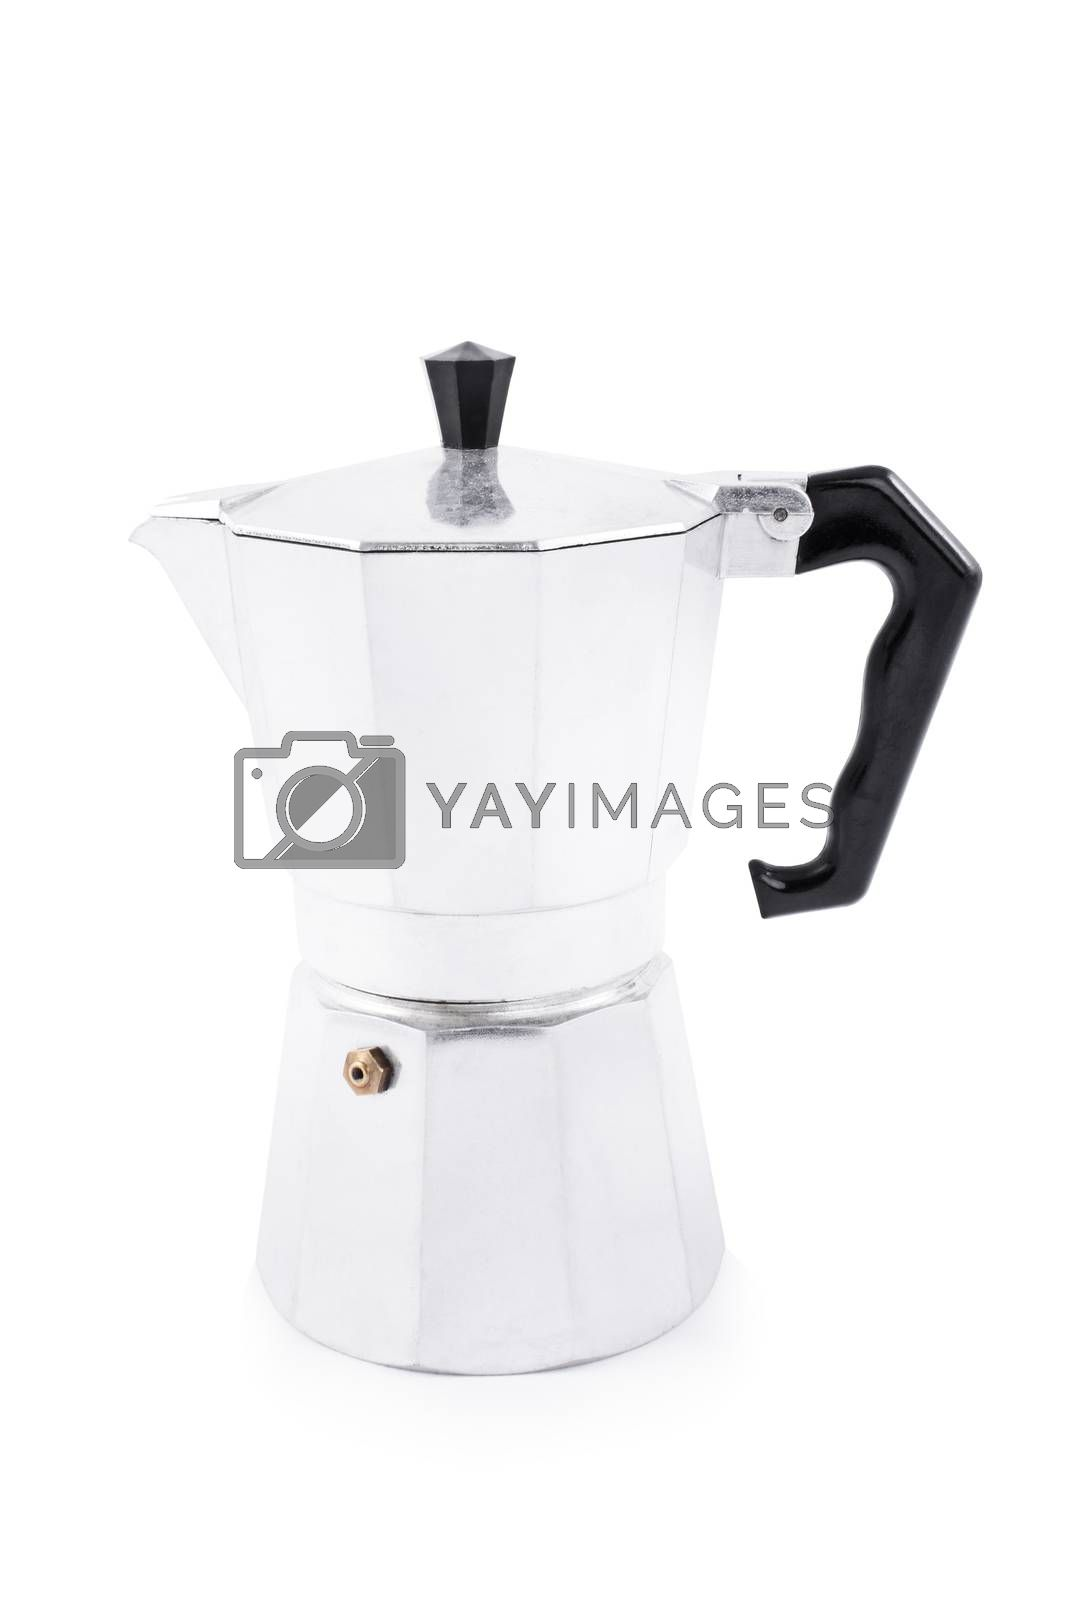 Side view of a metallic moka maker, isolated on white background.